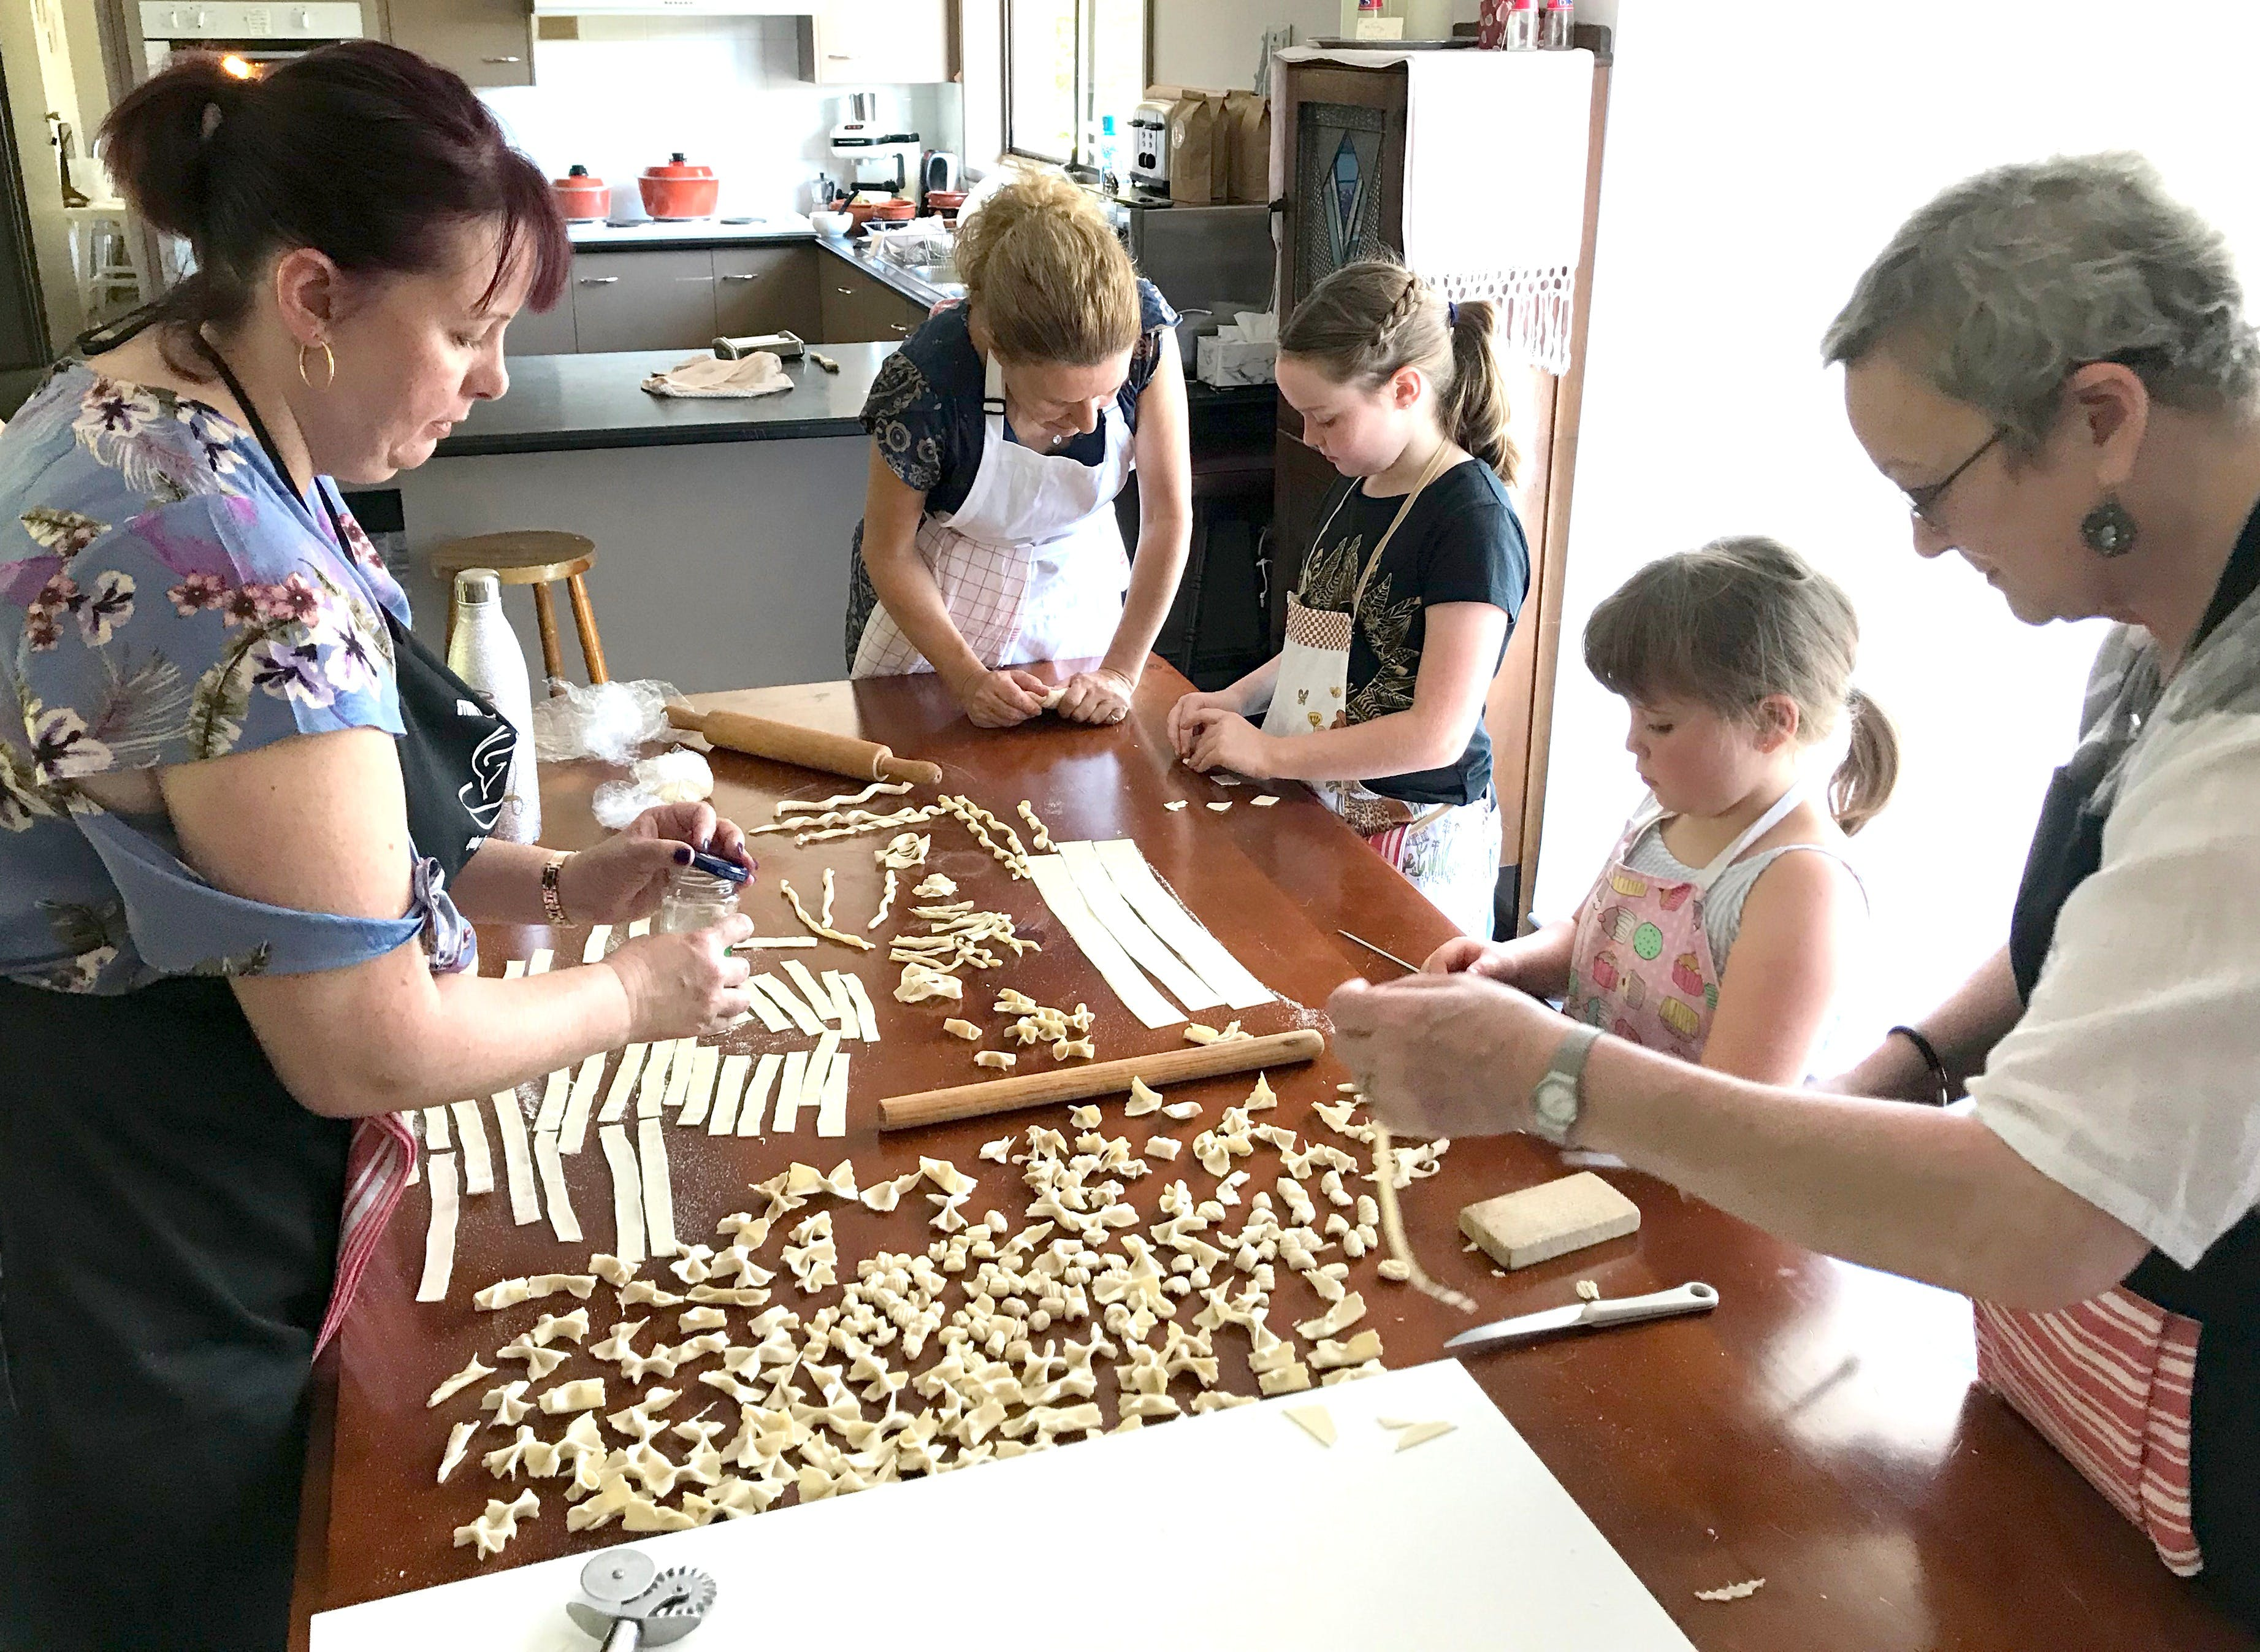 Kids Pasta Making Class - hands on fun at your house - Accommodation Brisbane